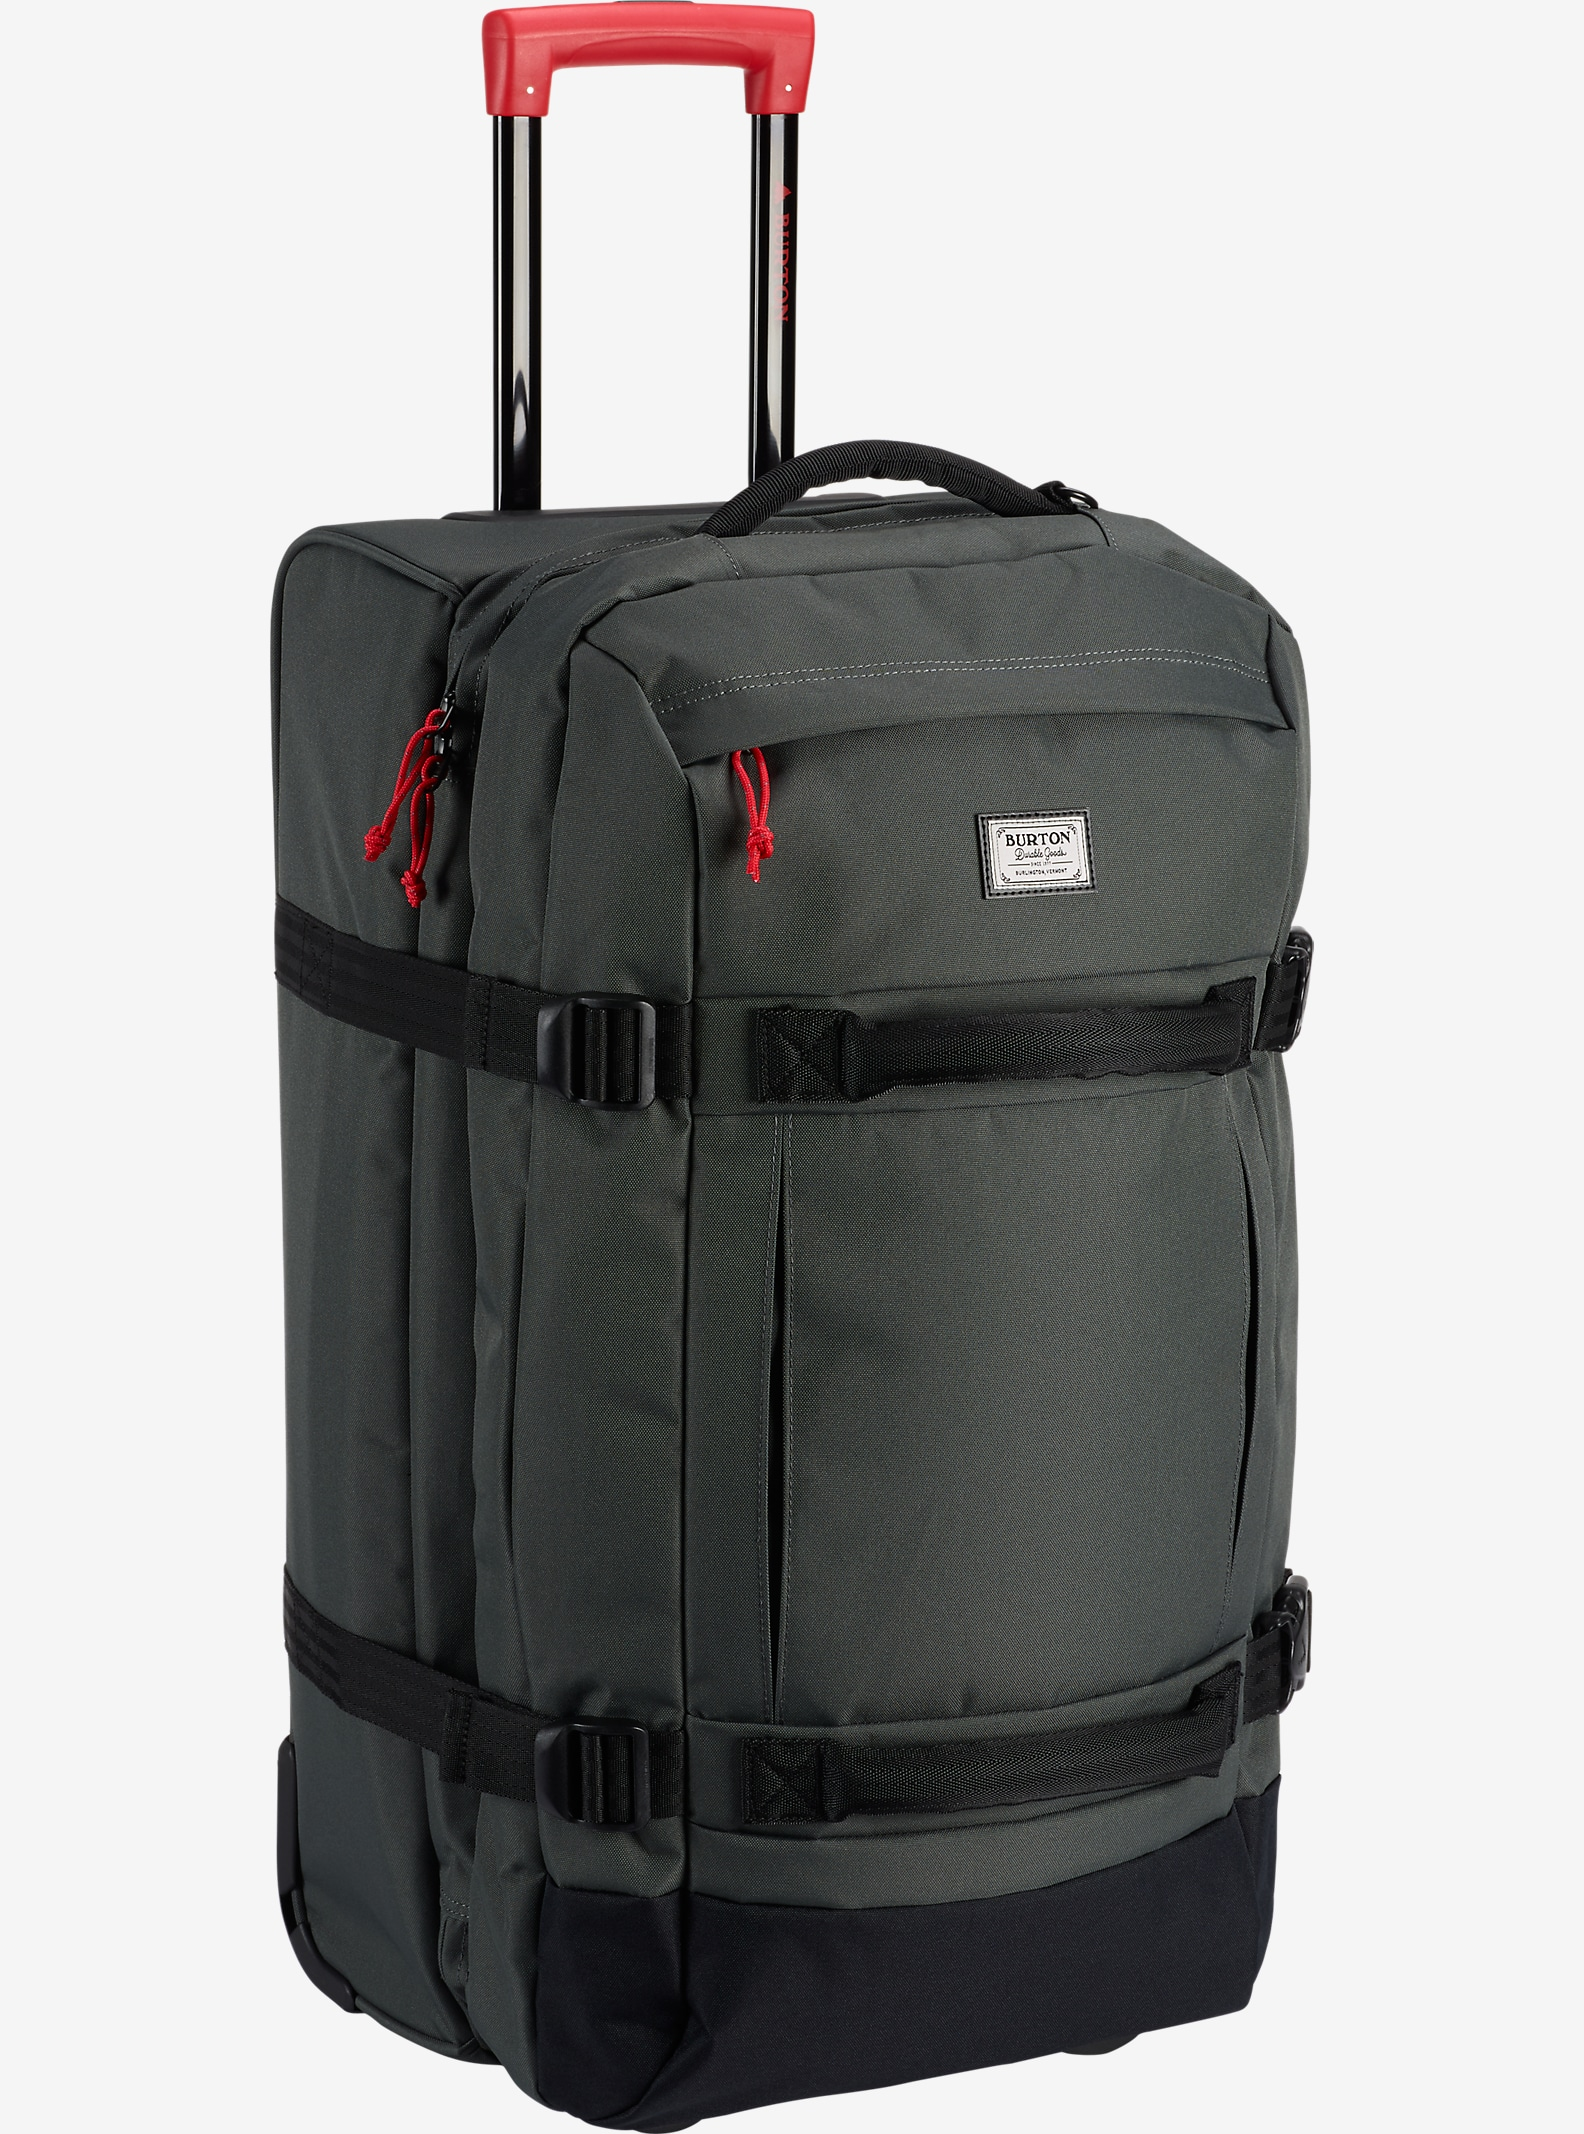 Burton Convoy Roller Travel Bag shown in Blotto